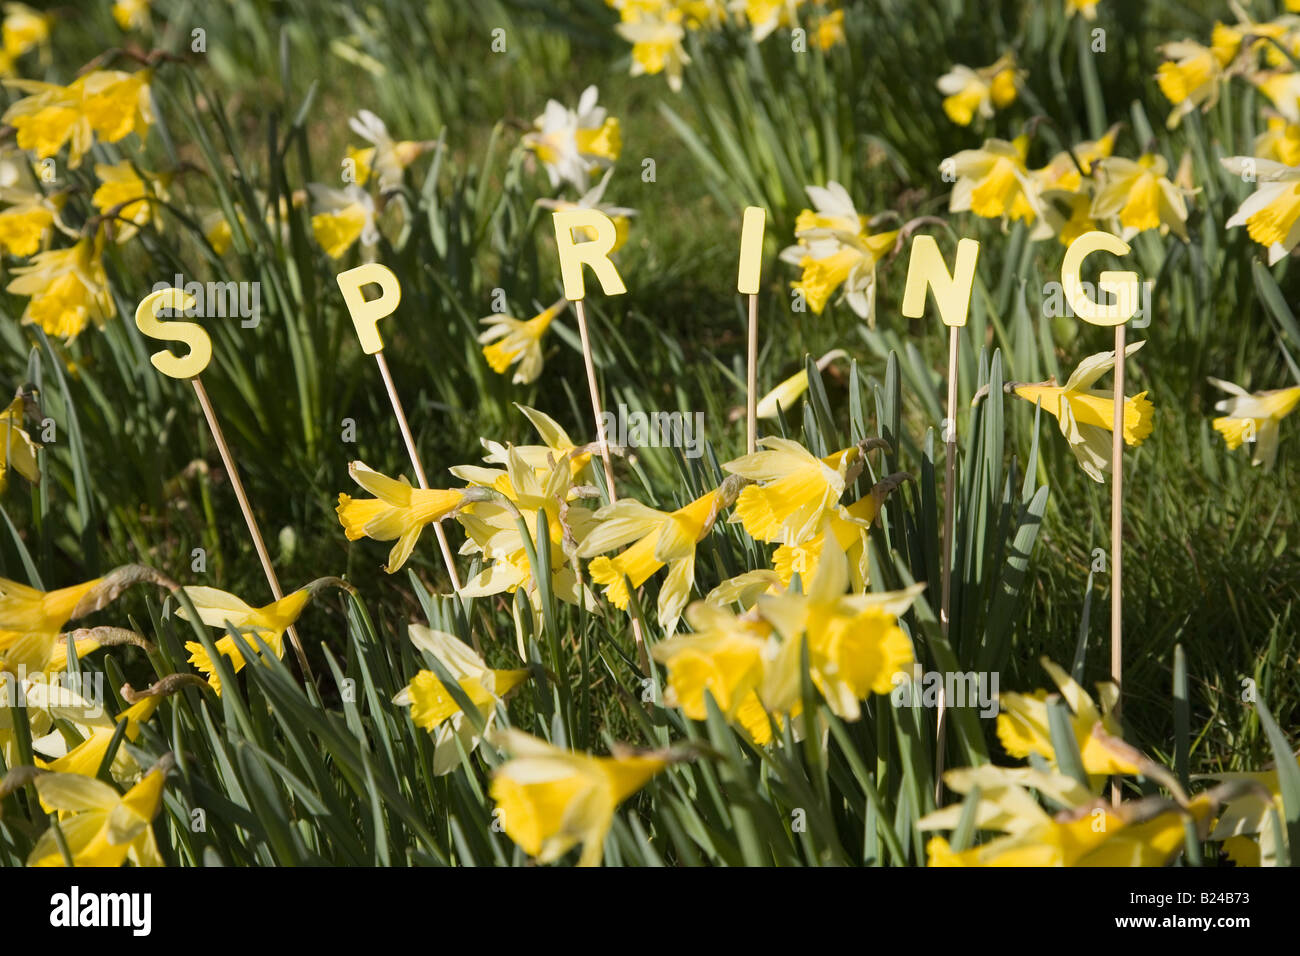 The word spring and daffodils - Stock Image